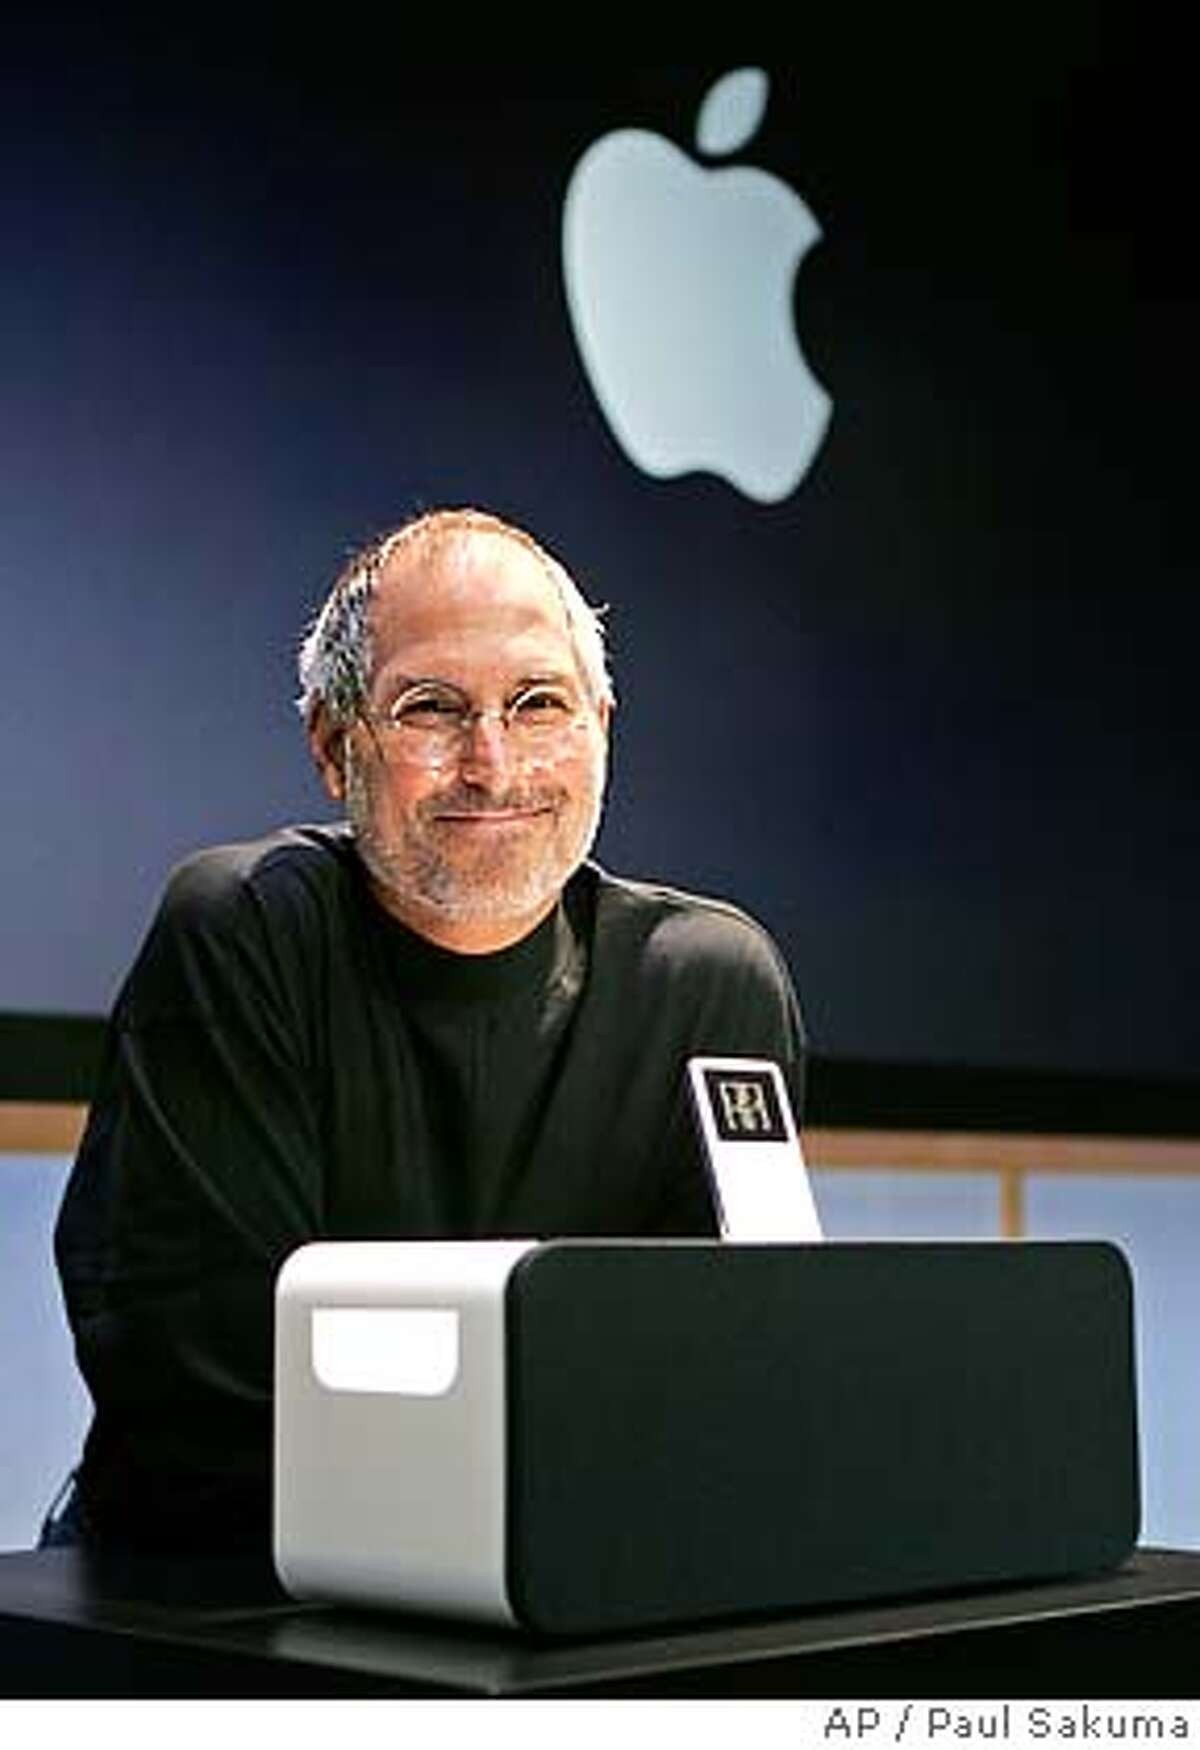 ** ADVANCE FOR SUNDAY MARCH 26 **FILE**Apple Computer Inc. CEO Steve Jobs smiles next to the new Apple iPod Hi-Fi speaker system for its iPod player at an unveiling at Apple headquarters in Cupertino, Calif., Tuesday, Feb. 28, 2006. As the storied company celebrates its 30th birthday in a week, Apple Computer Inc. will be showing its age: It will have brushed off its bruises from product failures and arguably misguided decisions to emerge with a shine that's more than skin-deep. Its luster now is brighter than ever, but for all of its recent successes, Apple also has its share of challenges ahead as it matures into a digital media provider. (AP Photo/Paul Sakuma)Ran on: 03-28-2006 Apple chief Steve Jobs has uncanny similarities to a character in his half-sister s new book, A Regular Guy. Ran on: 04-21-2006 Why is this man smiling? Steve Jobs computer company will begin a major expansion close to its Cupertino headquarters. Also Ran on: 05-21-2006 ** ADVANCE FOR SUNDAY MARCH 26 **FEB 28 2006 FILE PHOTO